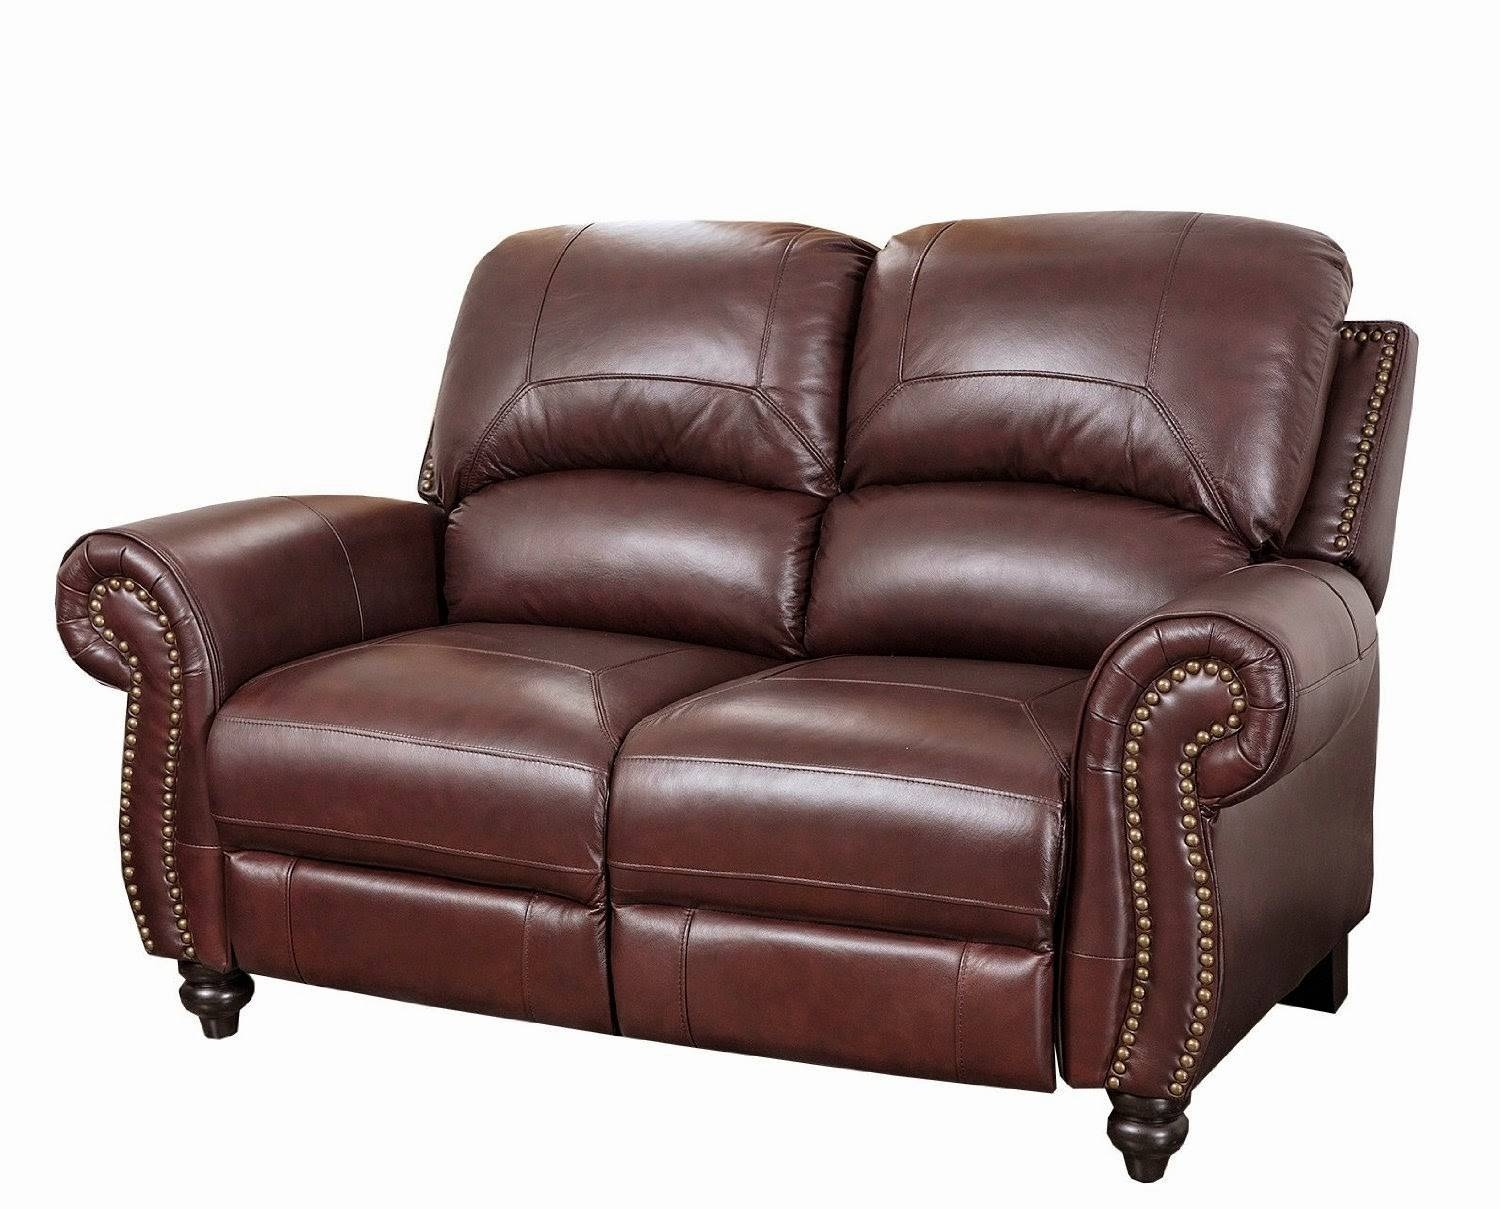 Best Reclining Sofa For The Money: Vivaldi 2 Seater Reclining With Regard To 2 Seater Recliner Leather Sofas (View 14 of 30)